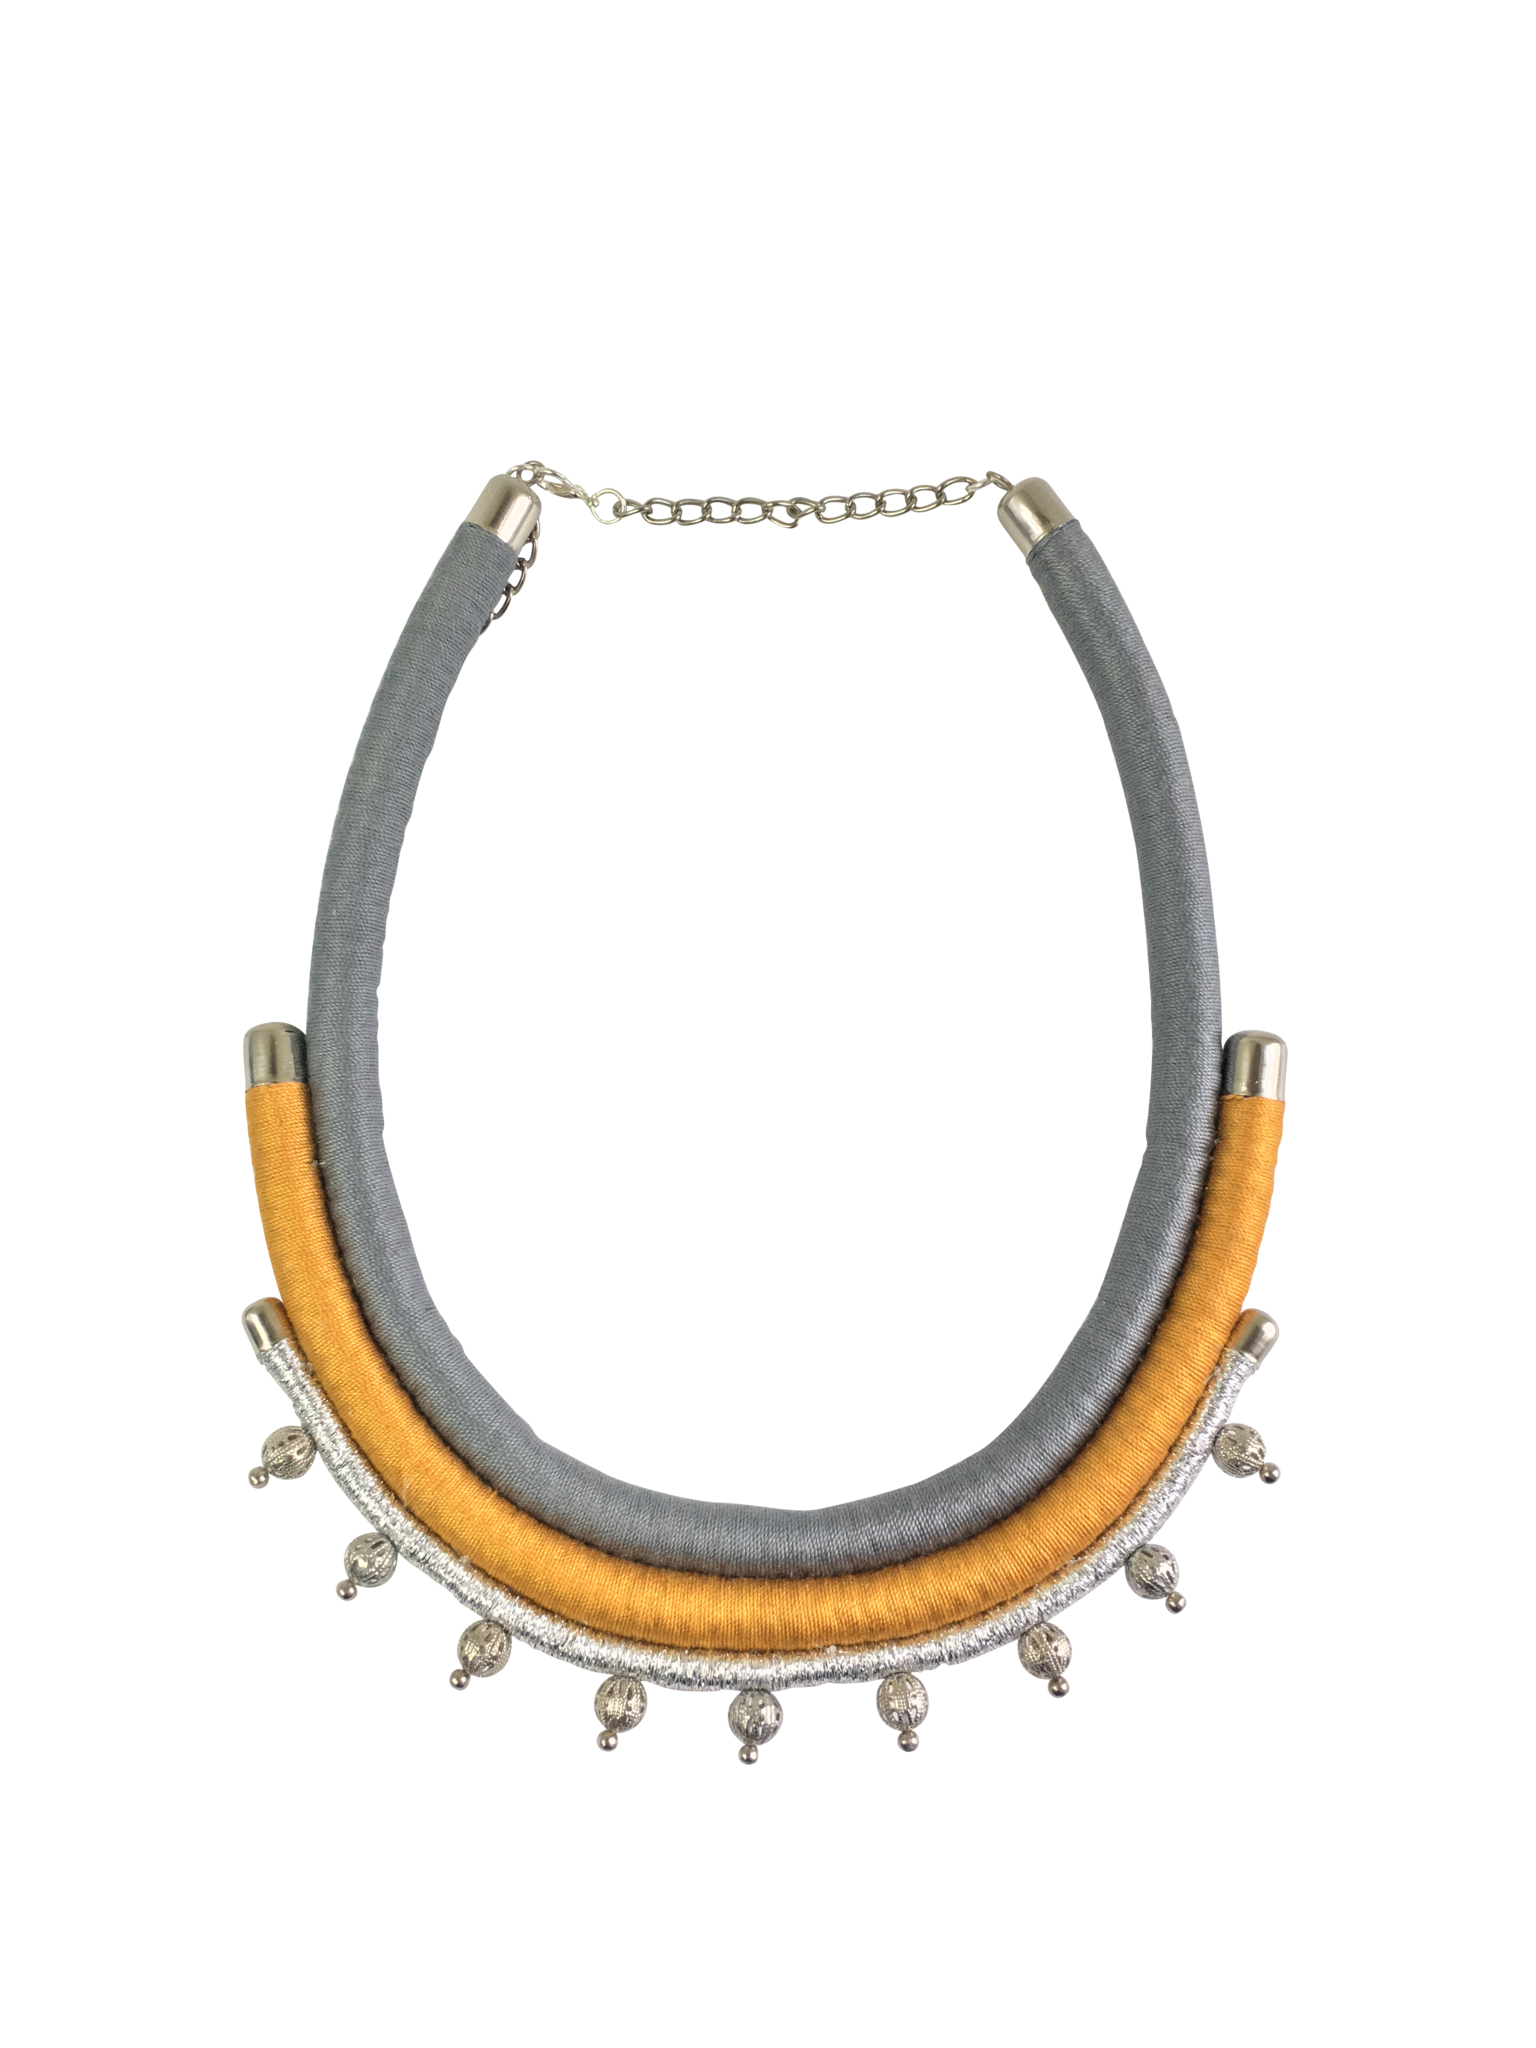 you silver can betsydickerson special amazon sub get statement the simple collar necklaces on gorgeous for incredibly night sophisticated necklace best rhinestone any a buzz